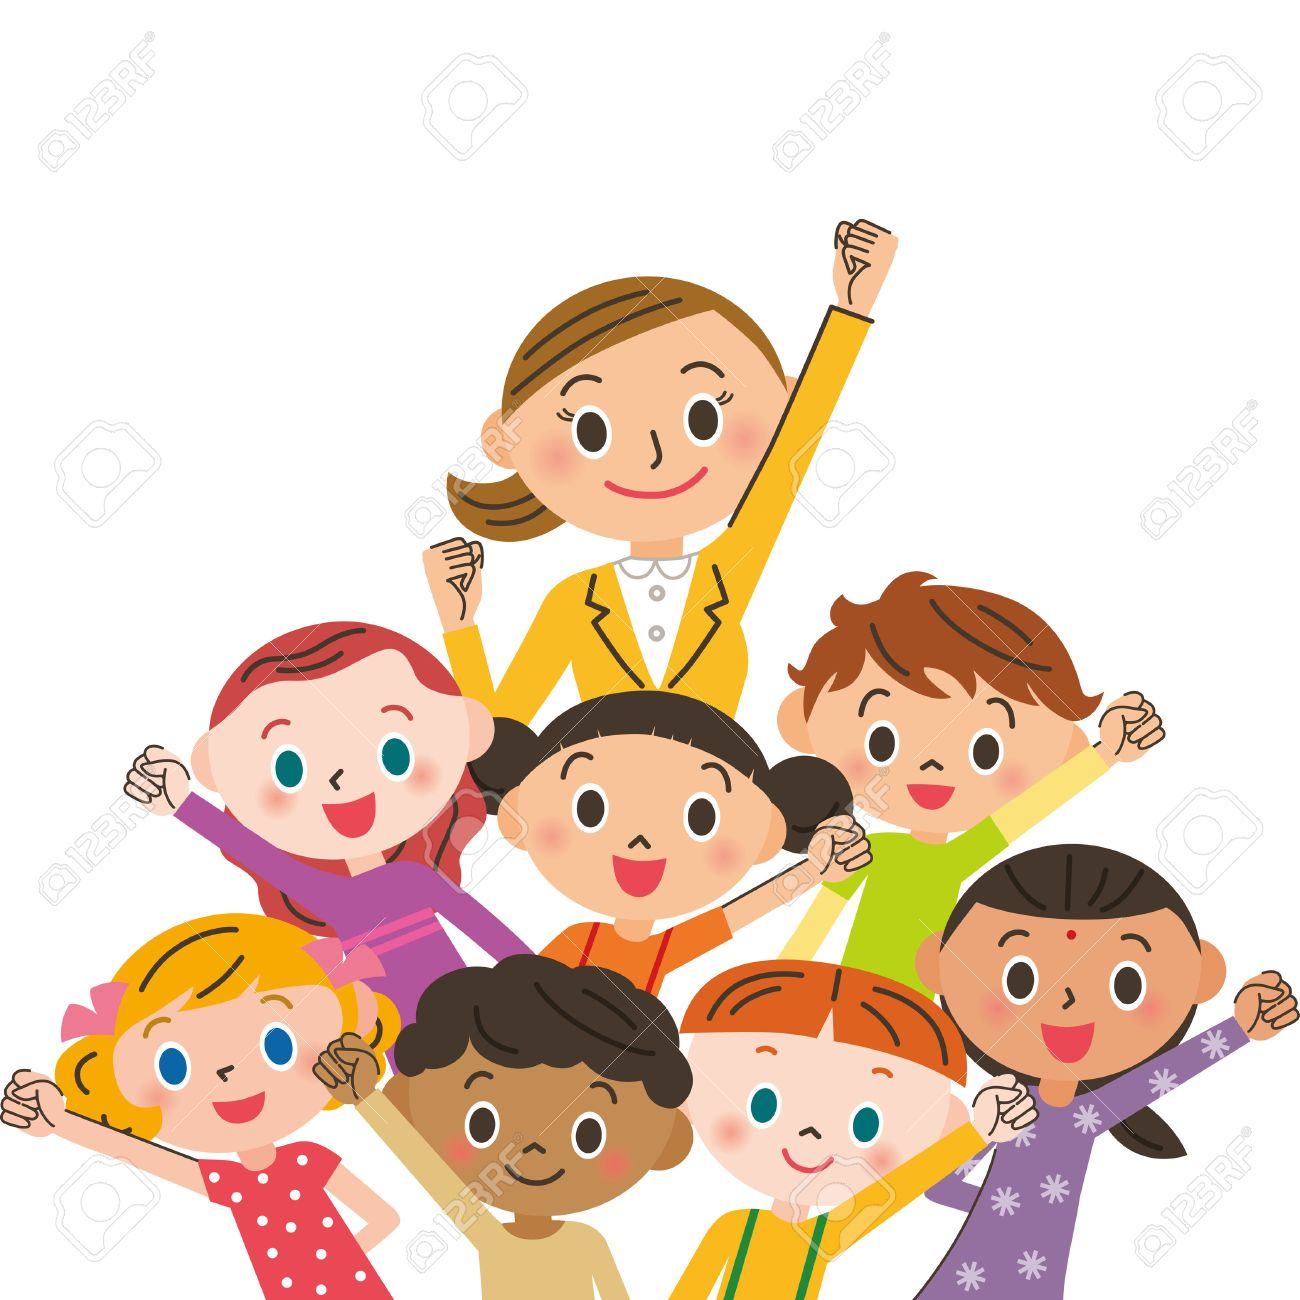 Teacher And Student Holding Hands Clipart.